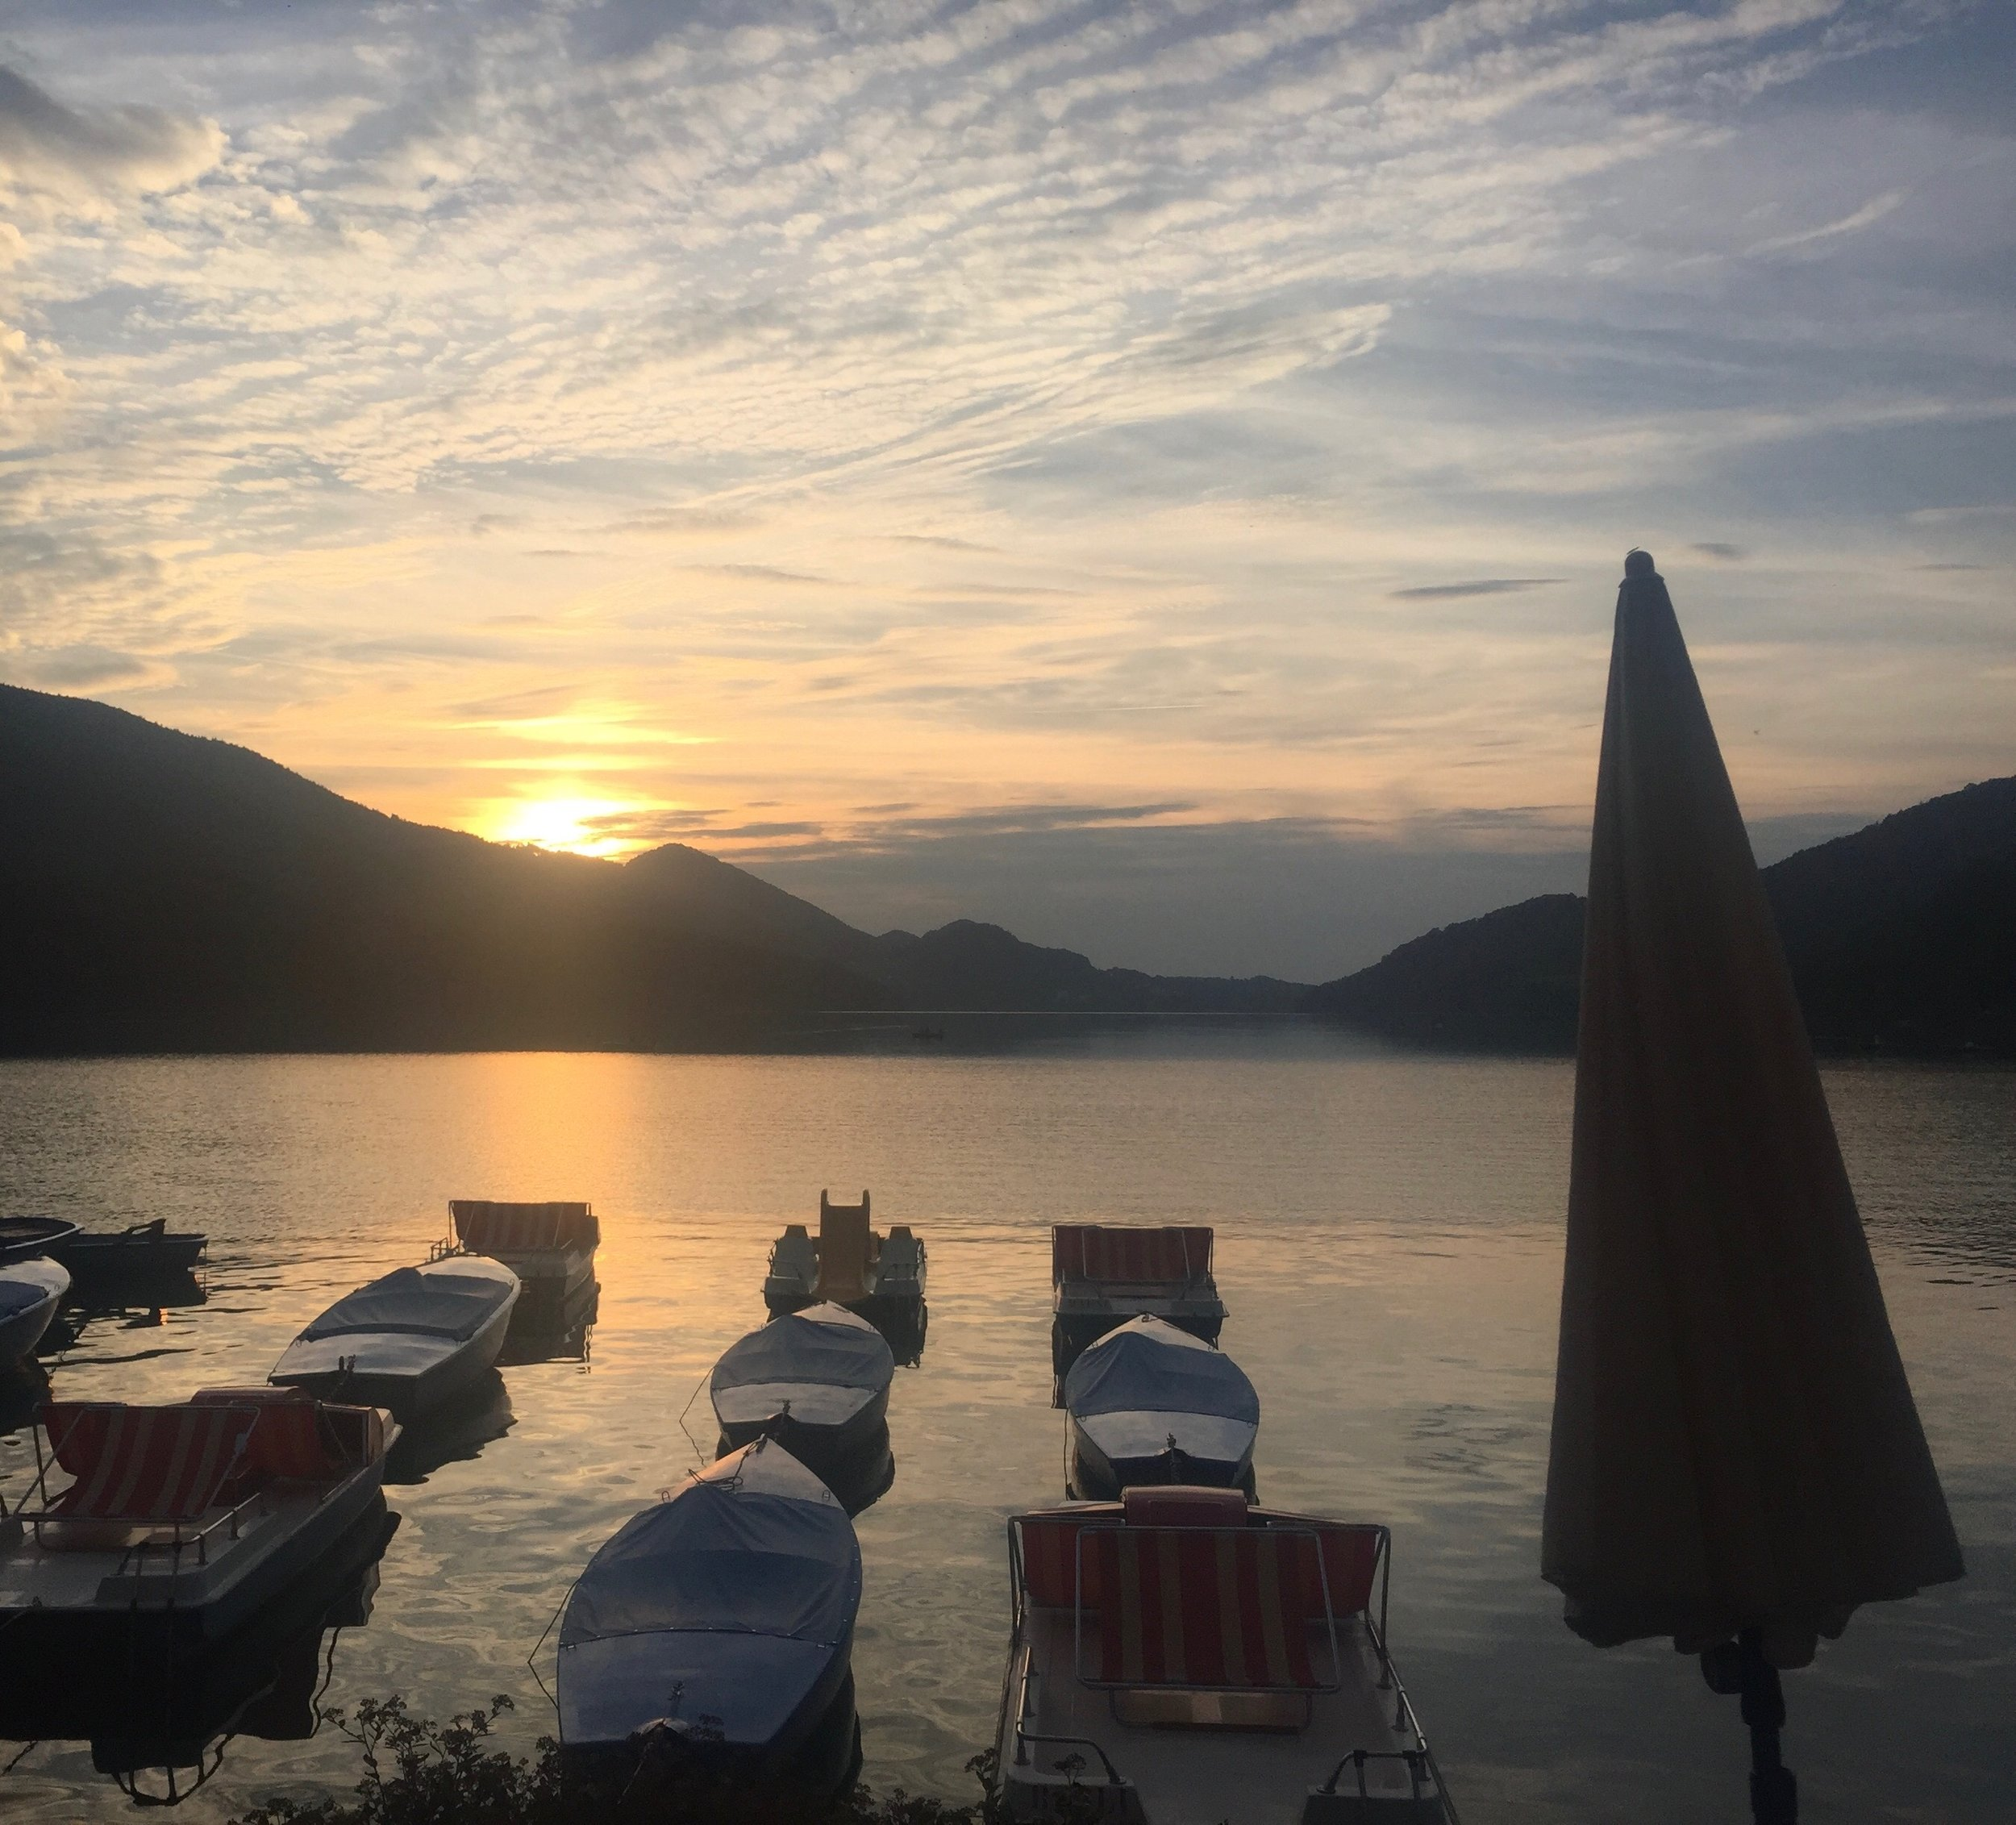 The view from dinner at Schlick Lake Fuschl Am See.